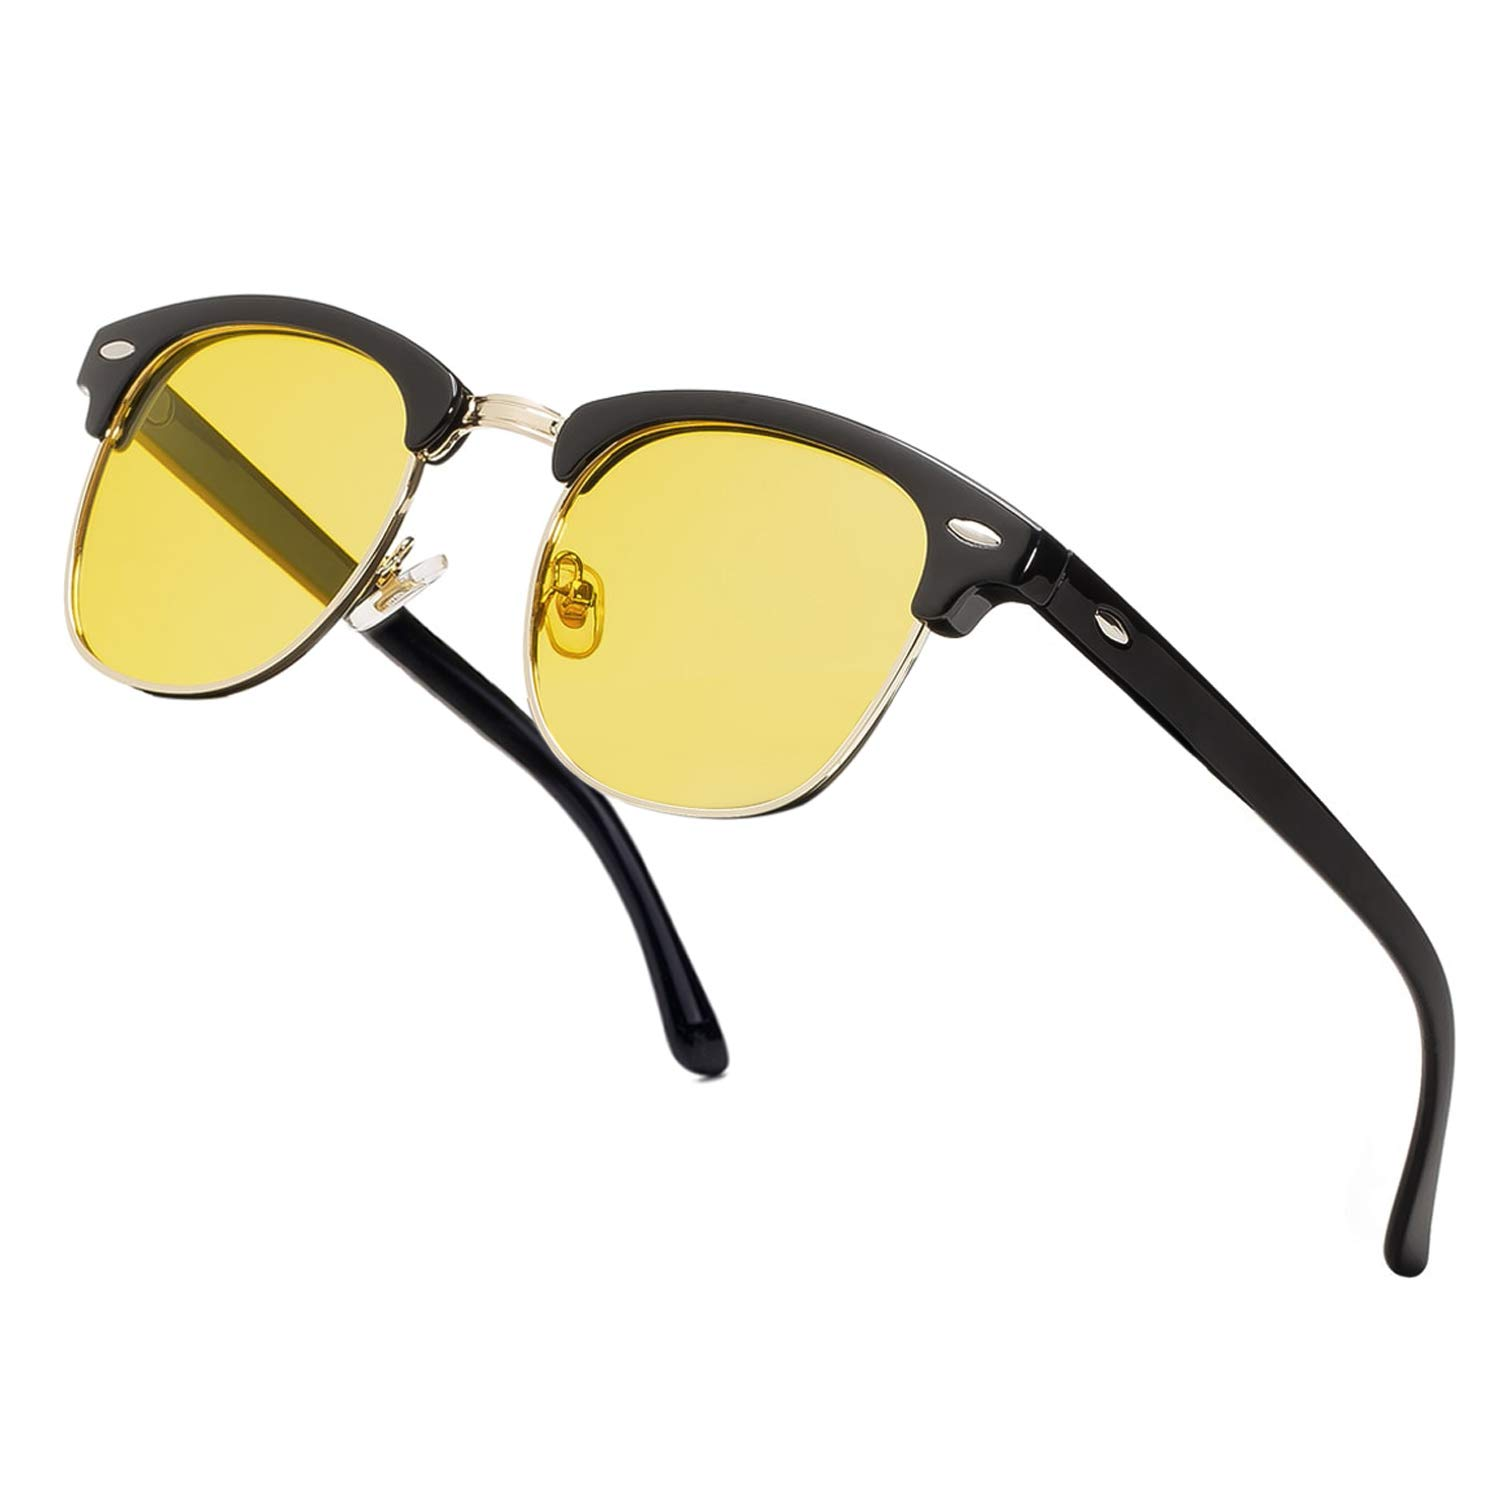 Semi Rimless Polarized Sunglasses Classic Brand Sun Glasses With Metal Retro Rivets (Yellow Lens/Black Frame) by NIEEPA